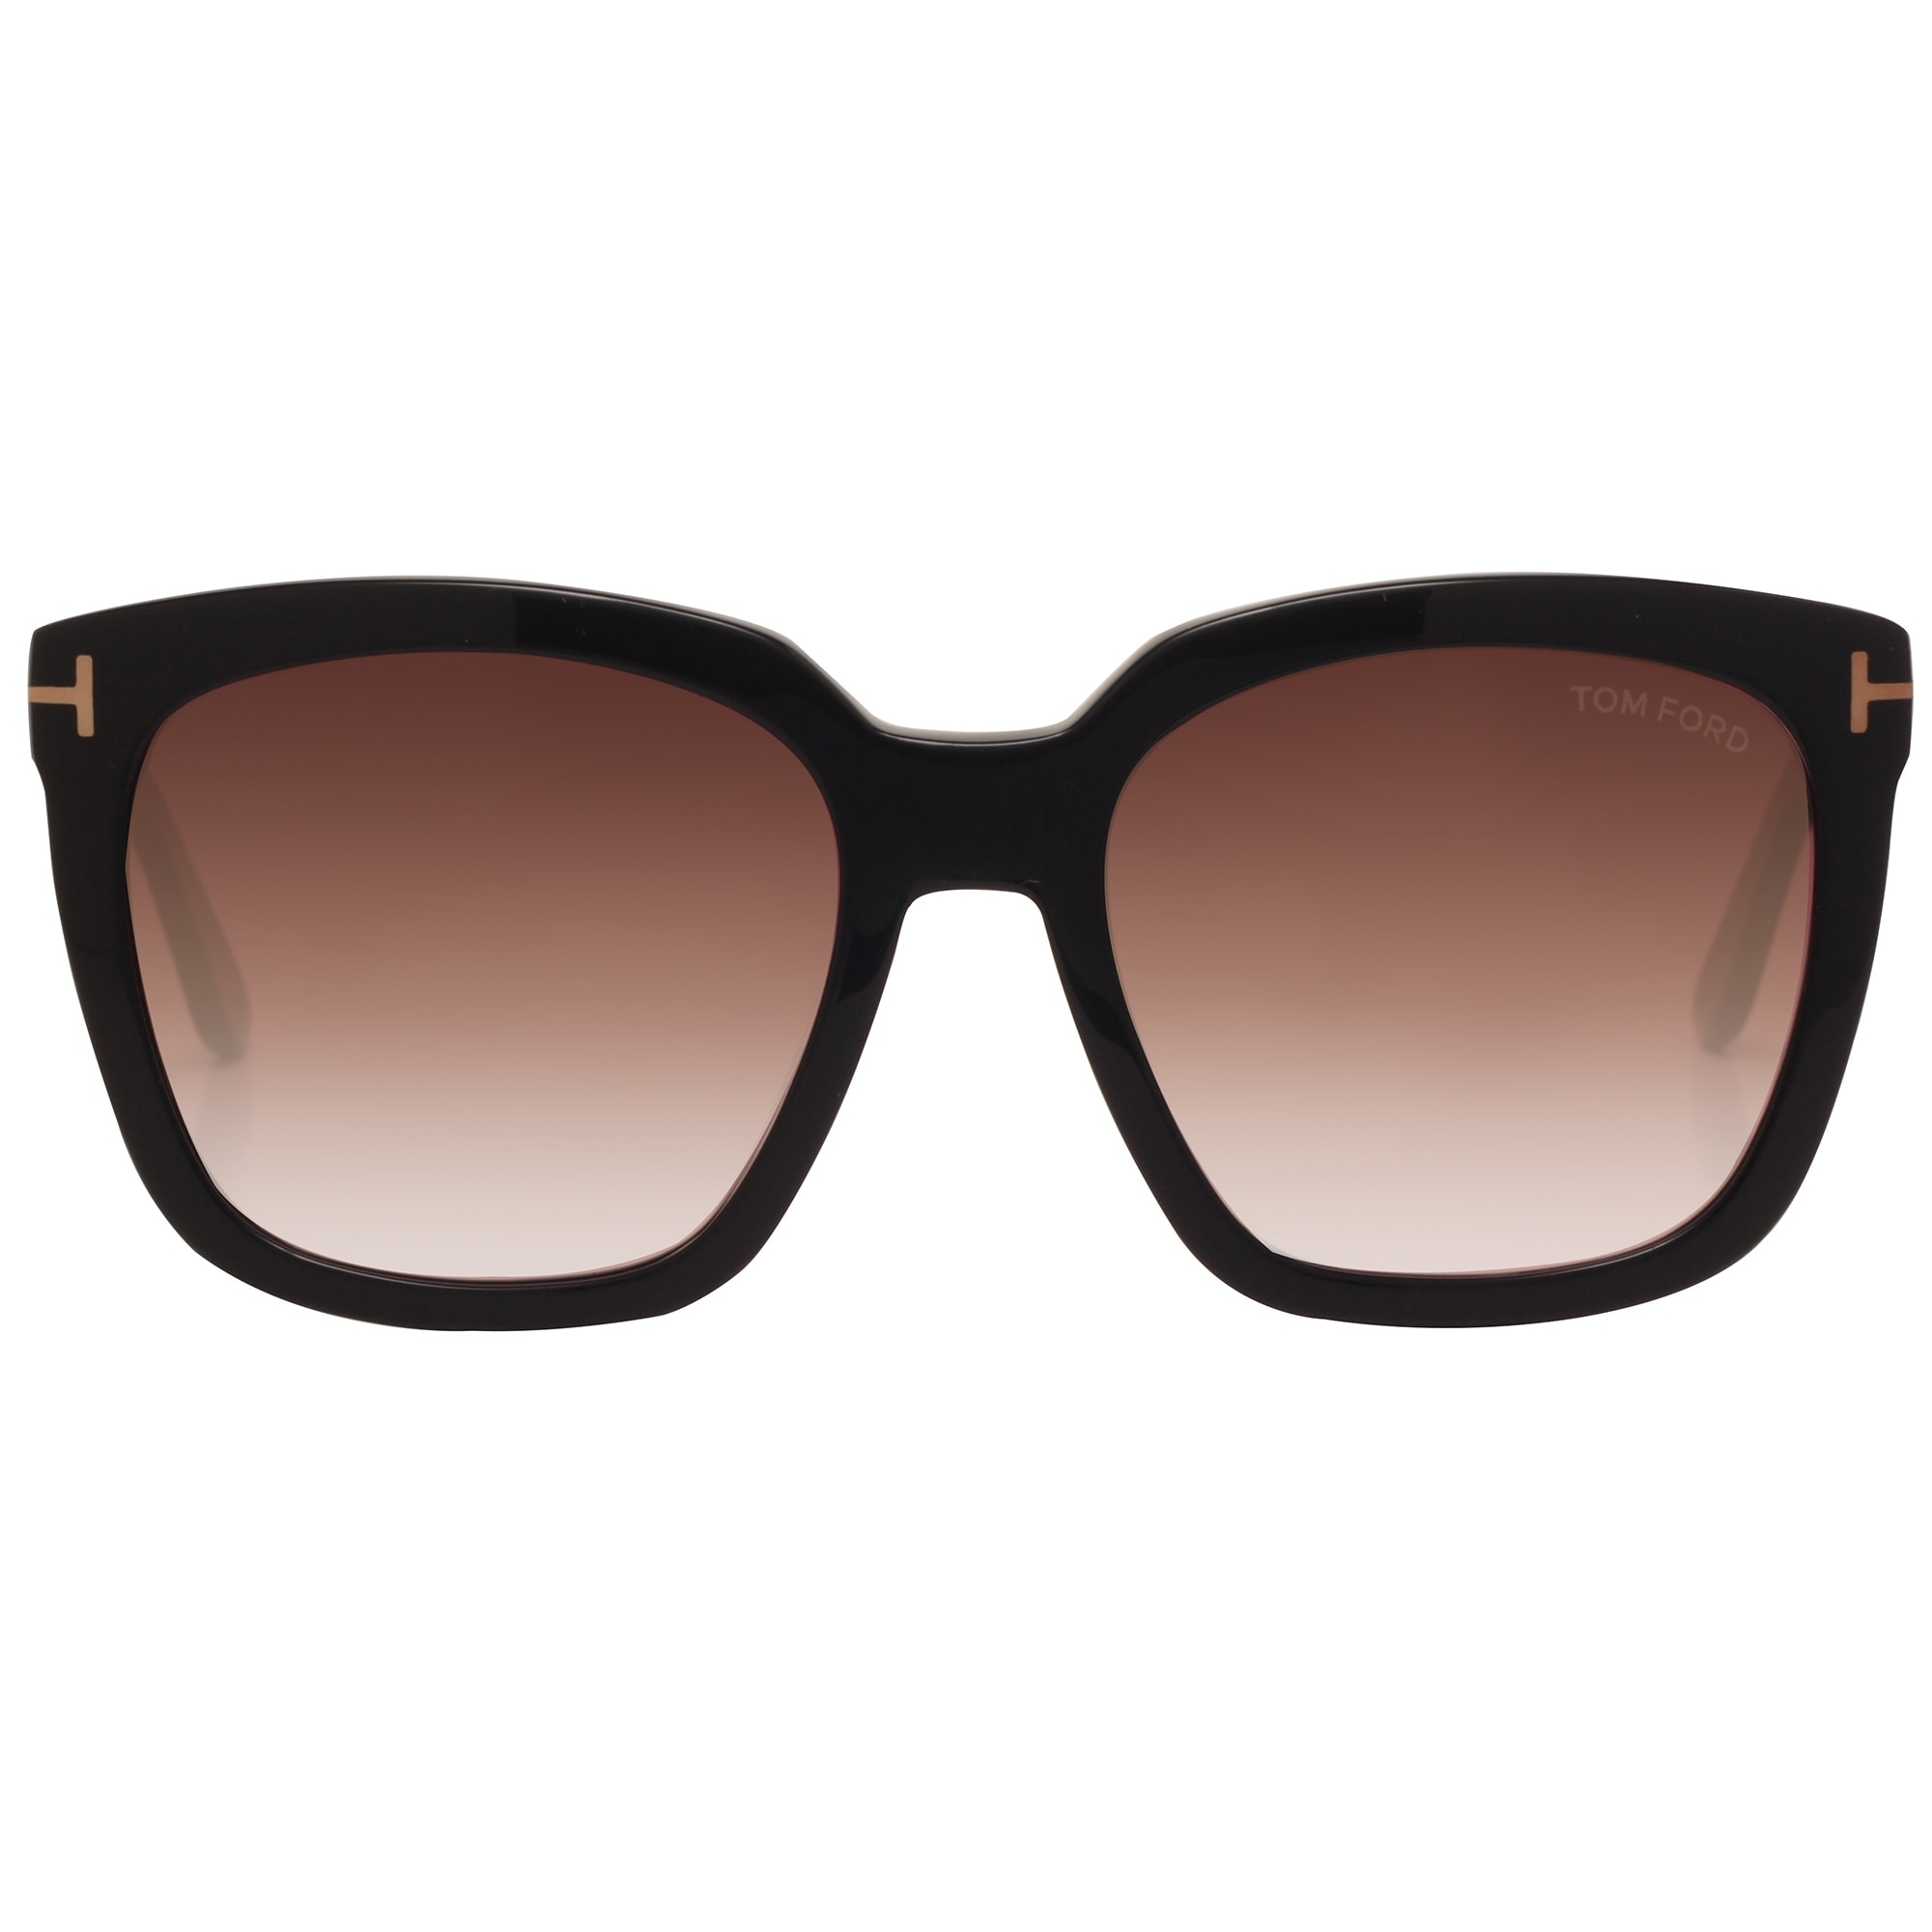 cd5f6548f59 Shop Tom Ford Amarra TF 502 01T 55mm Black Burgundy Gradient Women Square  Sunglasses - Shiny Black - 55mm-18mm-140mm - Free Shipping Today -  Overstock - ...